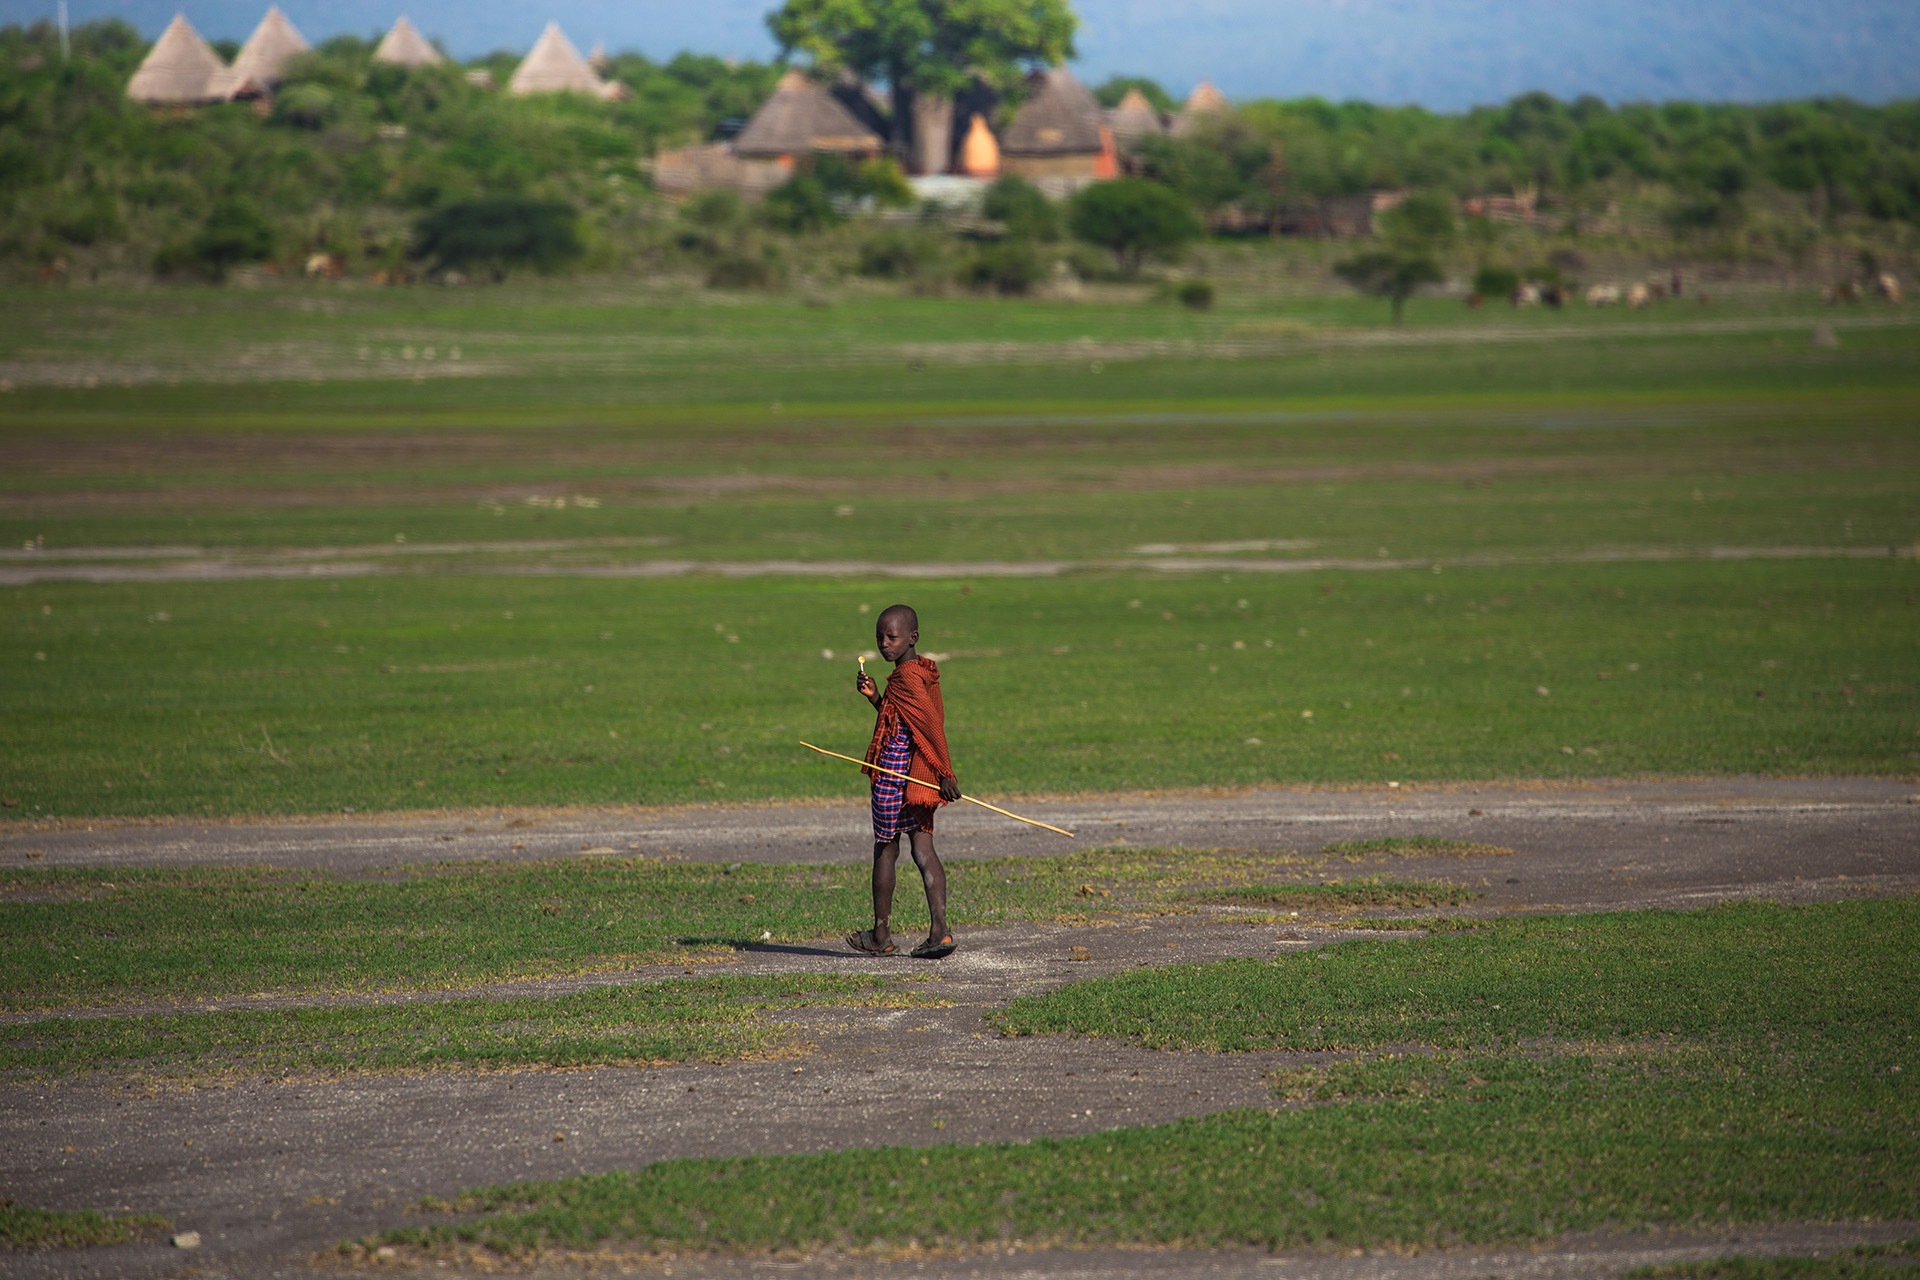 It is said that once they take these responsibilities, they must be mindful of the perils of them. Wearing red and carrying sticks certainly help to ease the mind – as the Maasai believe it discourages lions. In the huge expanse of this open land, a dried-up lake basin, these children must feel vunerable.